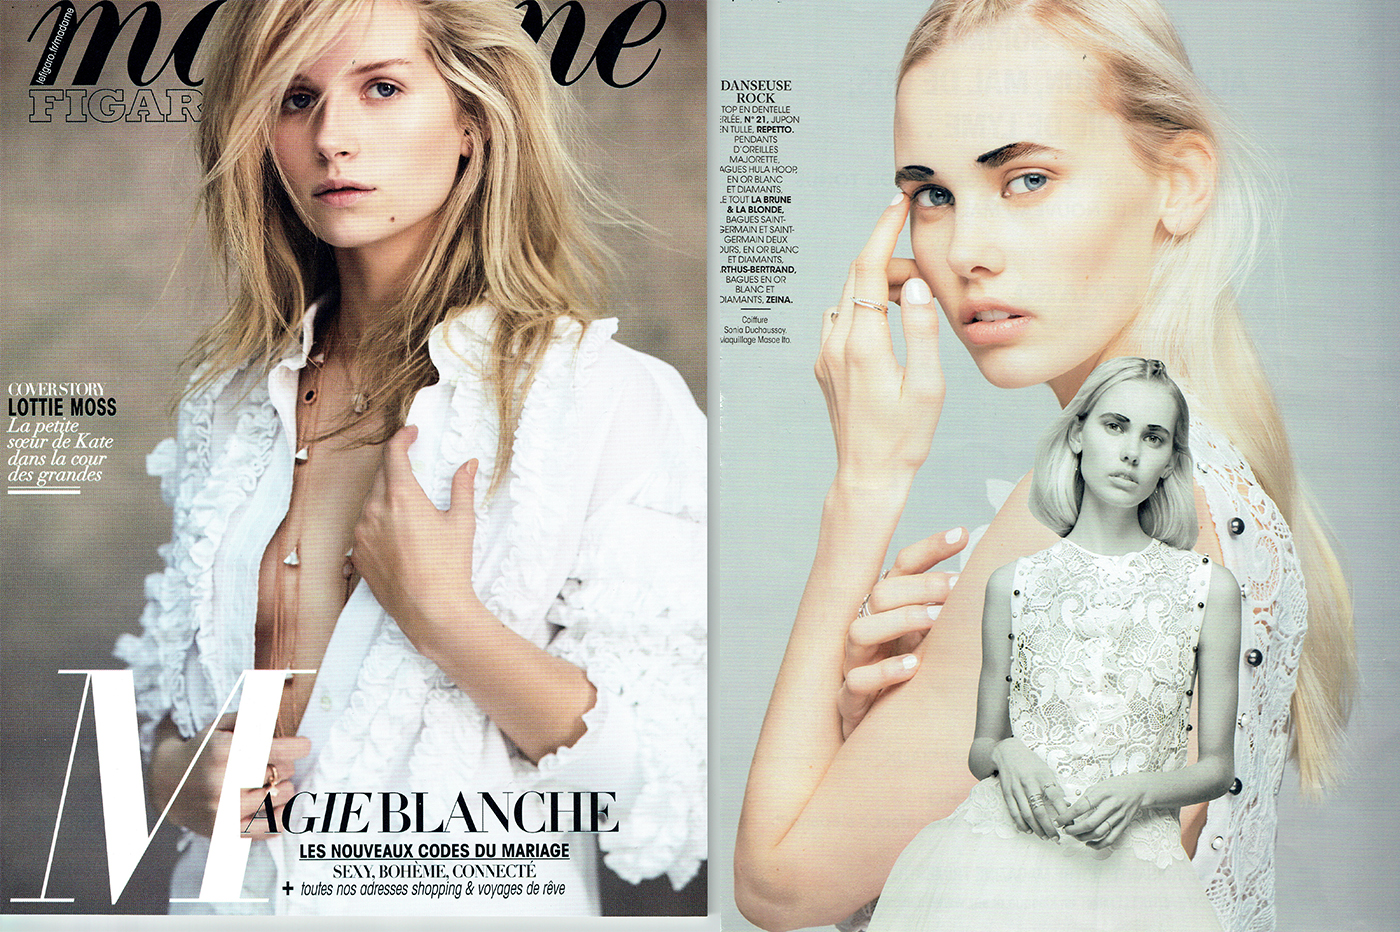 THE MOST BEAUTIFUL DAY OF YOUR LIFE! MADAME FIGARO